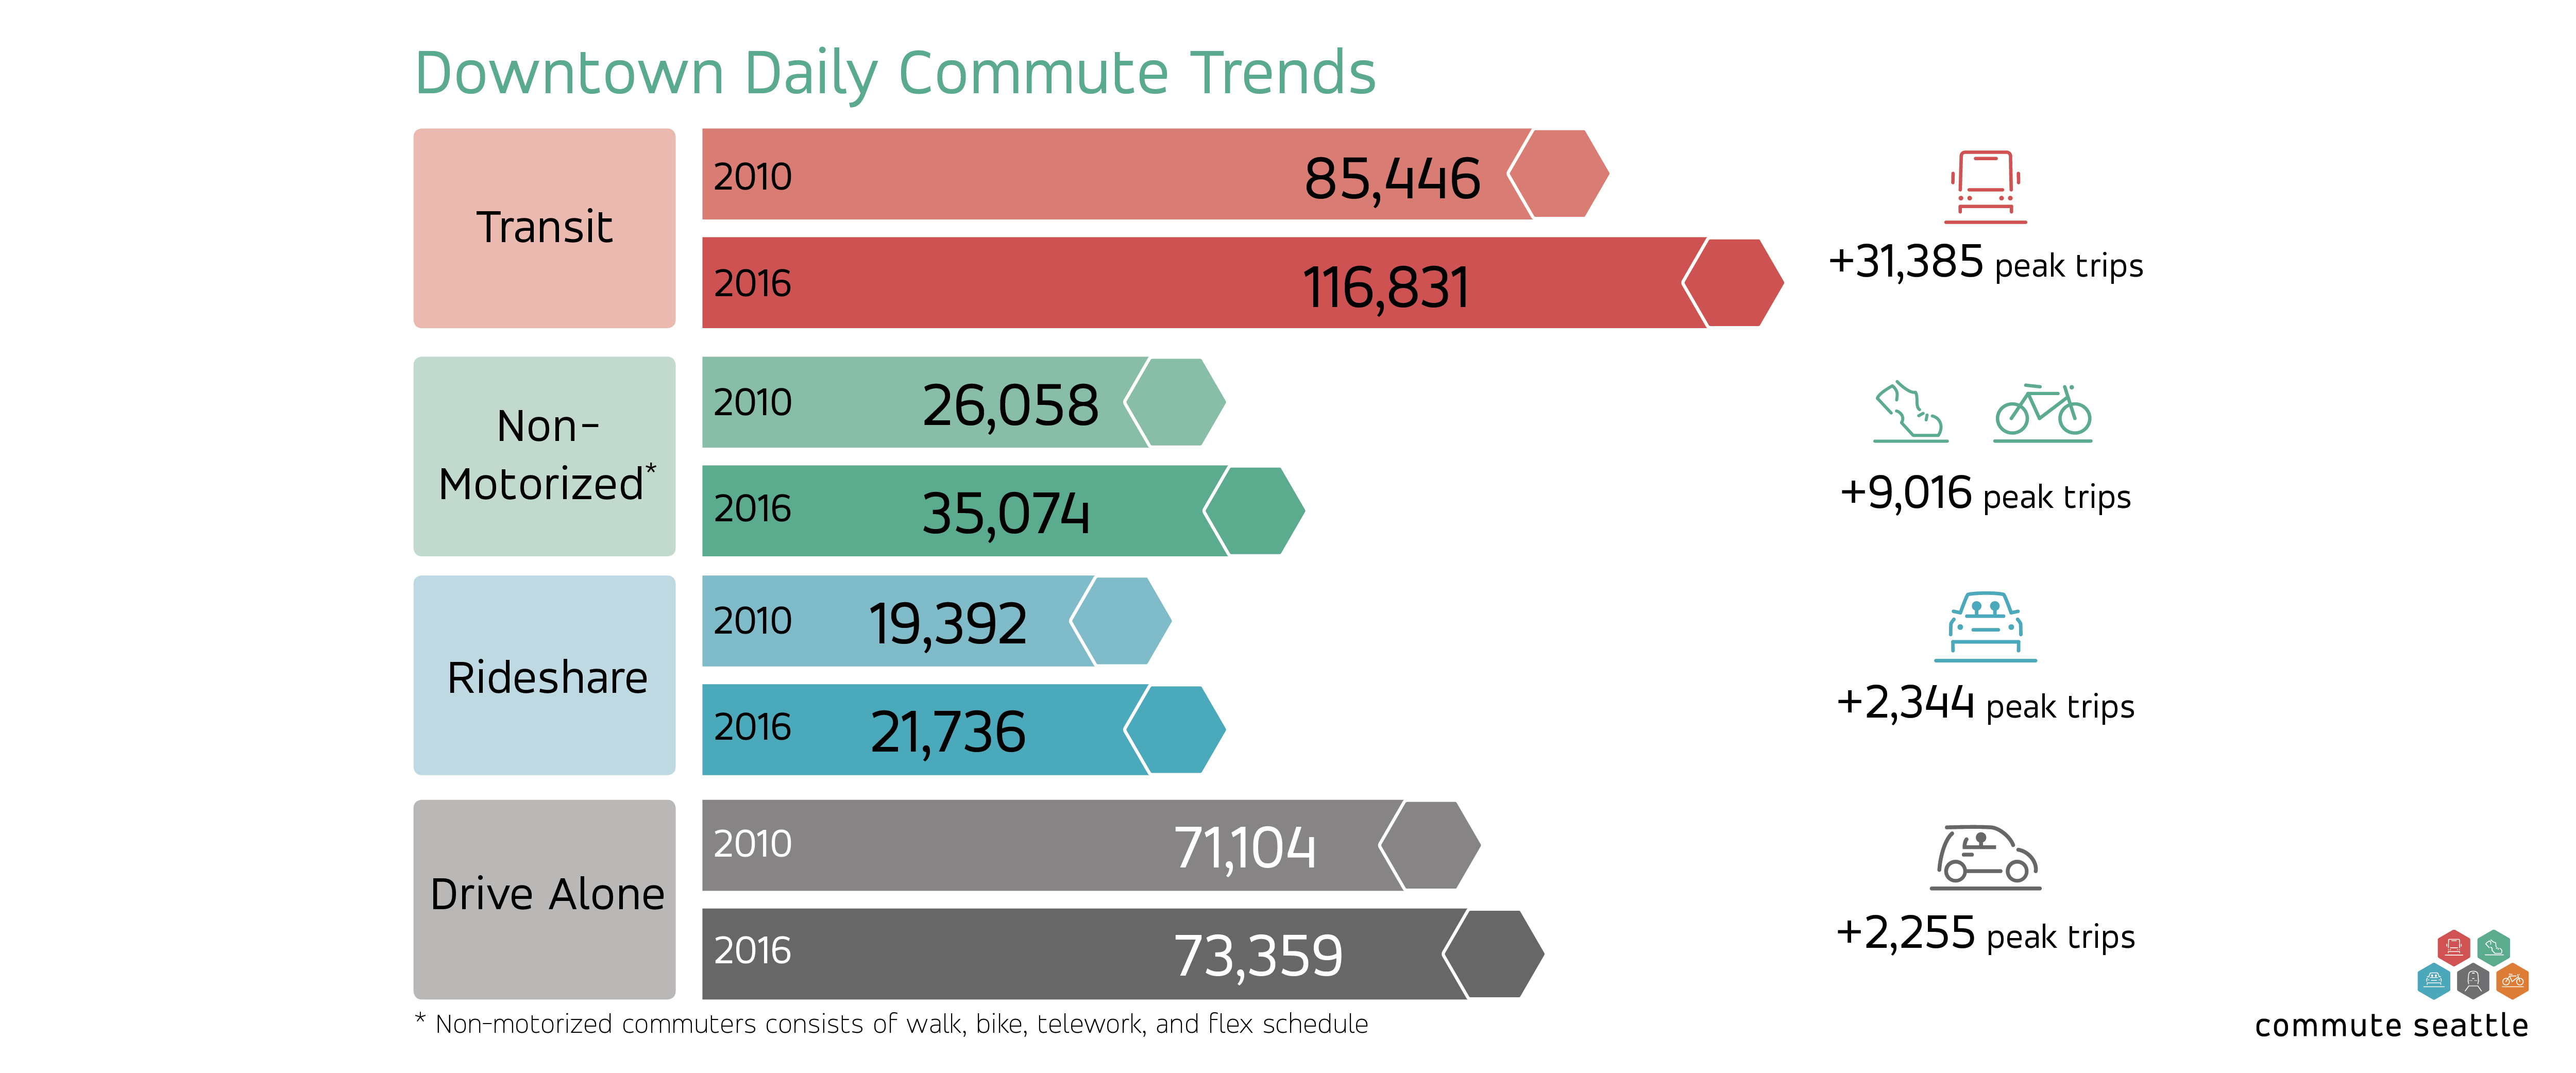 Downtown daily commute trends